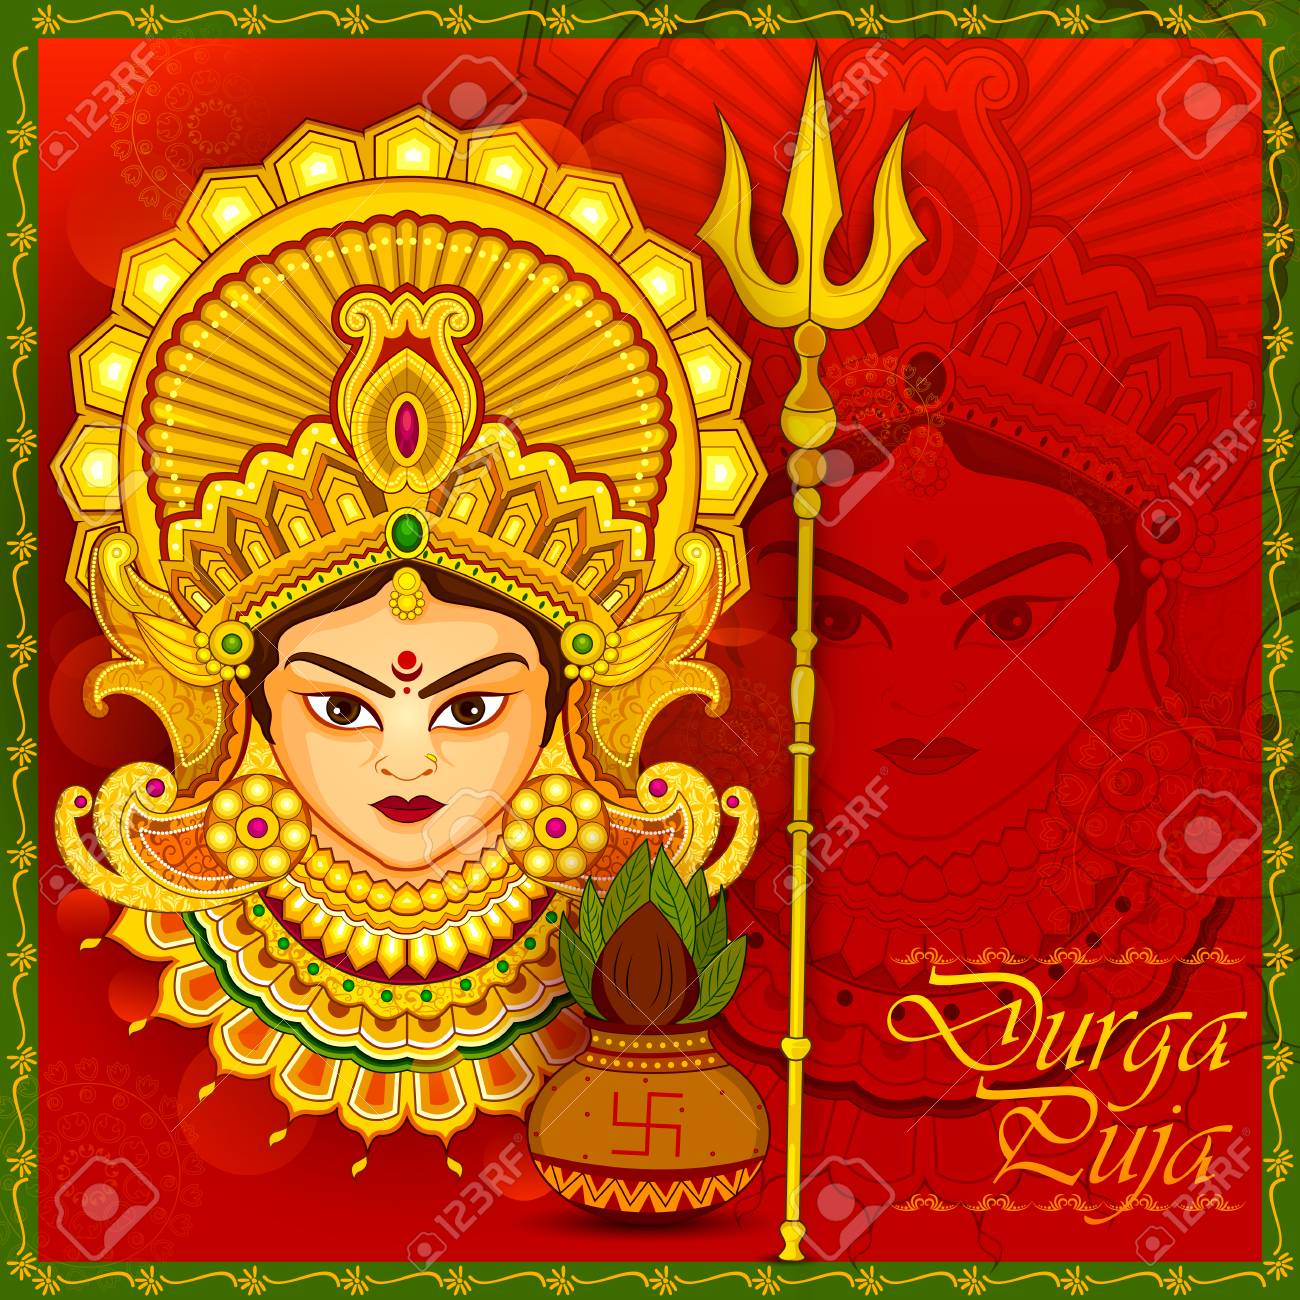 Beautiful Face Of Goddess Durga For Happy Dussehra Or Shubh Navratri..  Royalty Free Cliparts, Vectors, And Stock Illustration. Image 86477844.